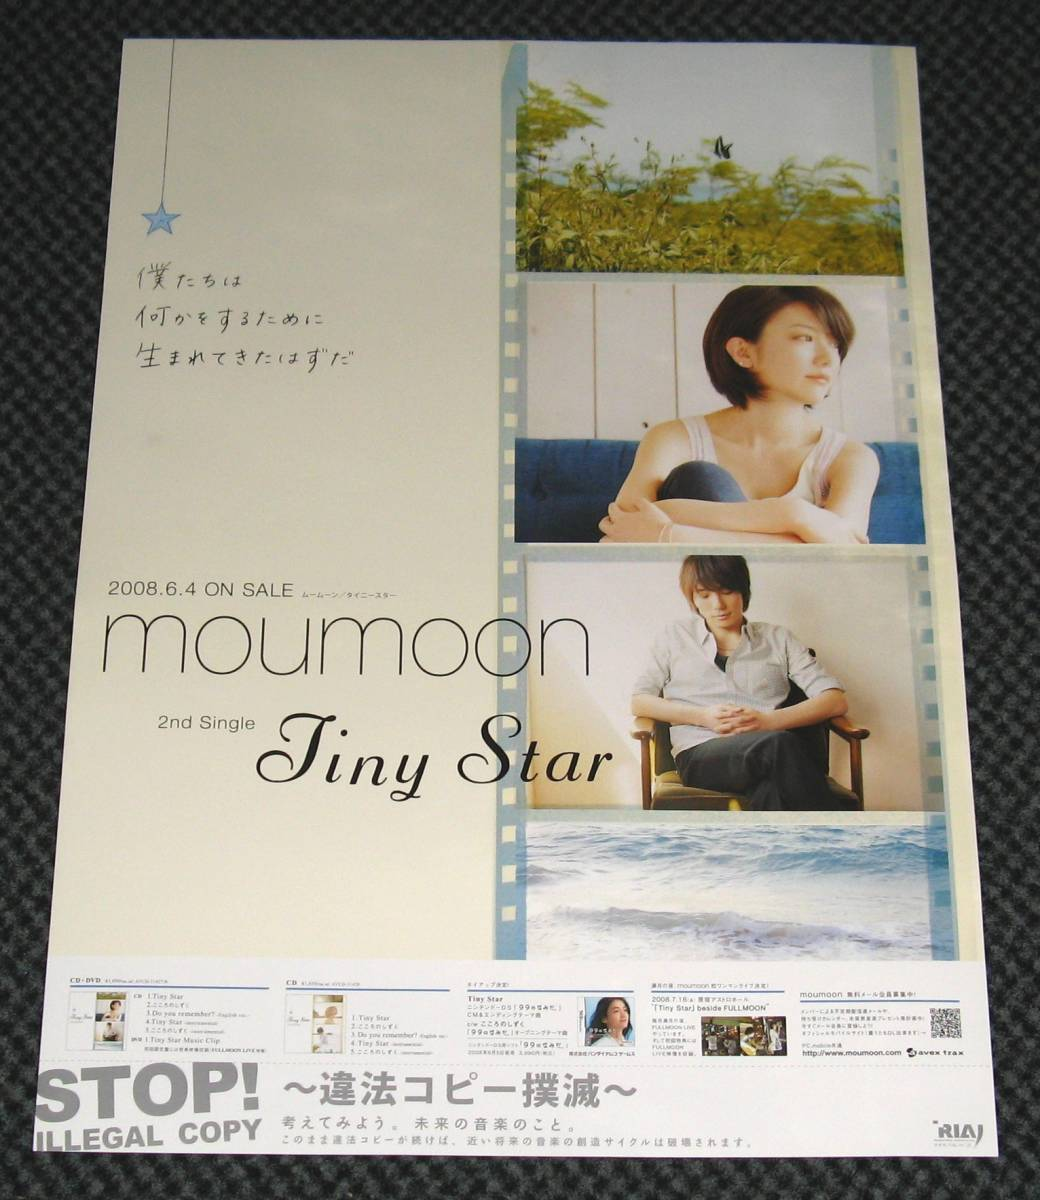 moumoon [Tiny Star] 告知ポスター